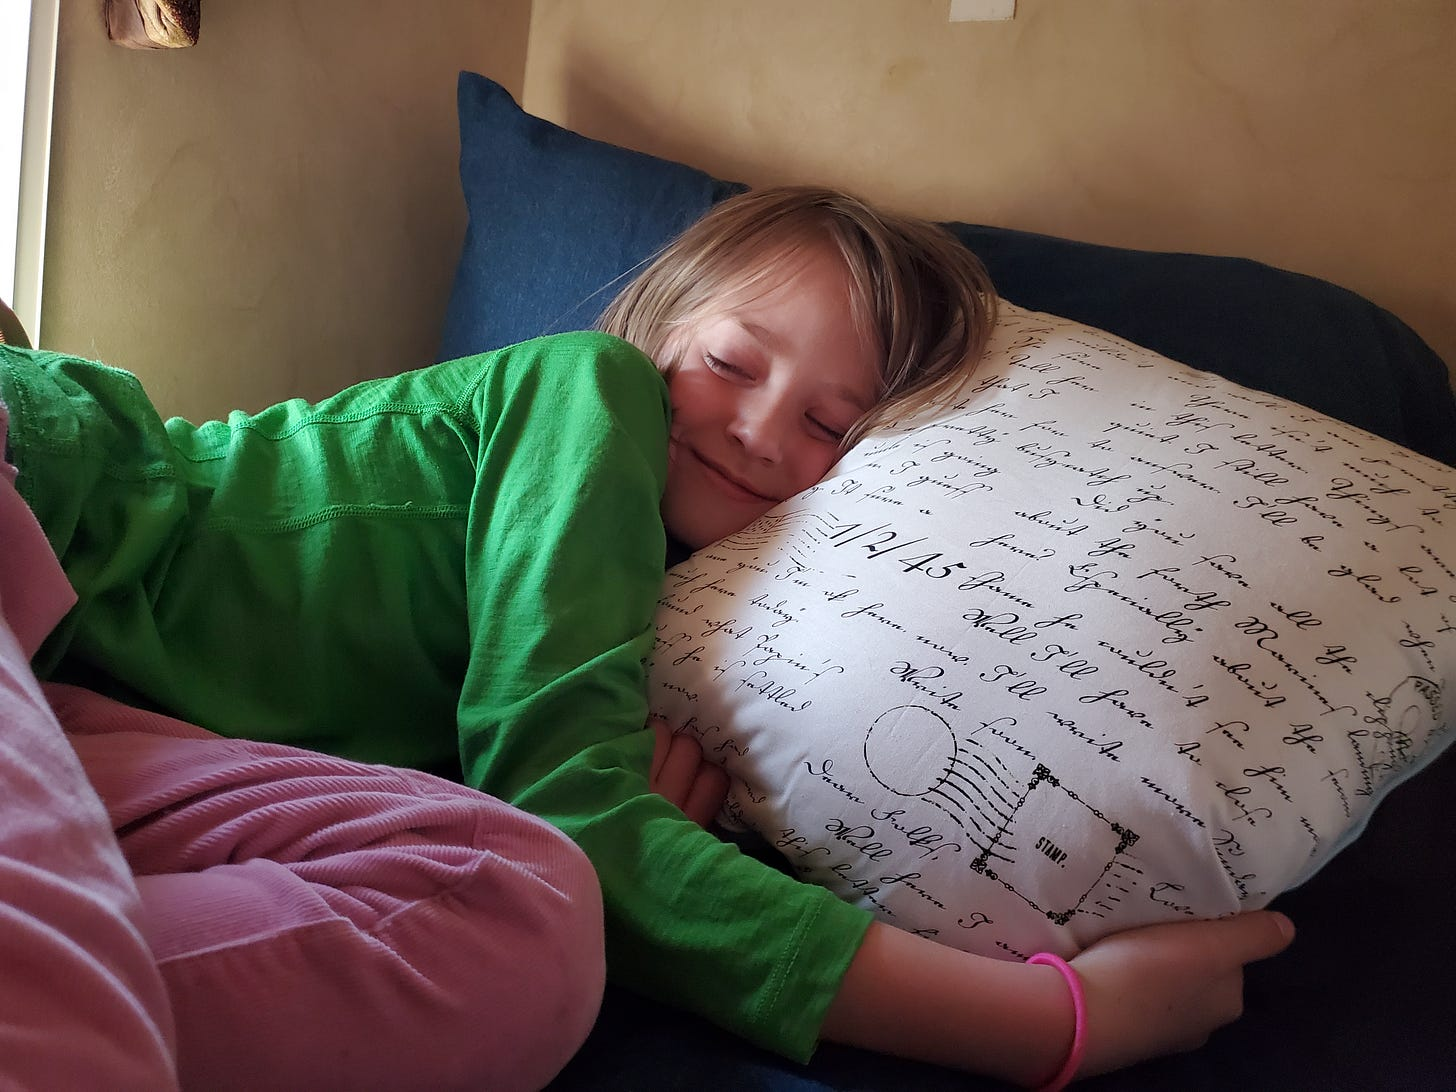 L smiling with her eyes closed and her head pressed against a white pillow in the top bunk.